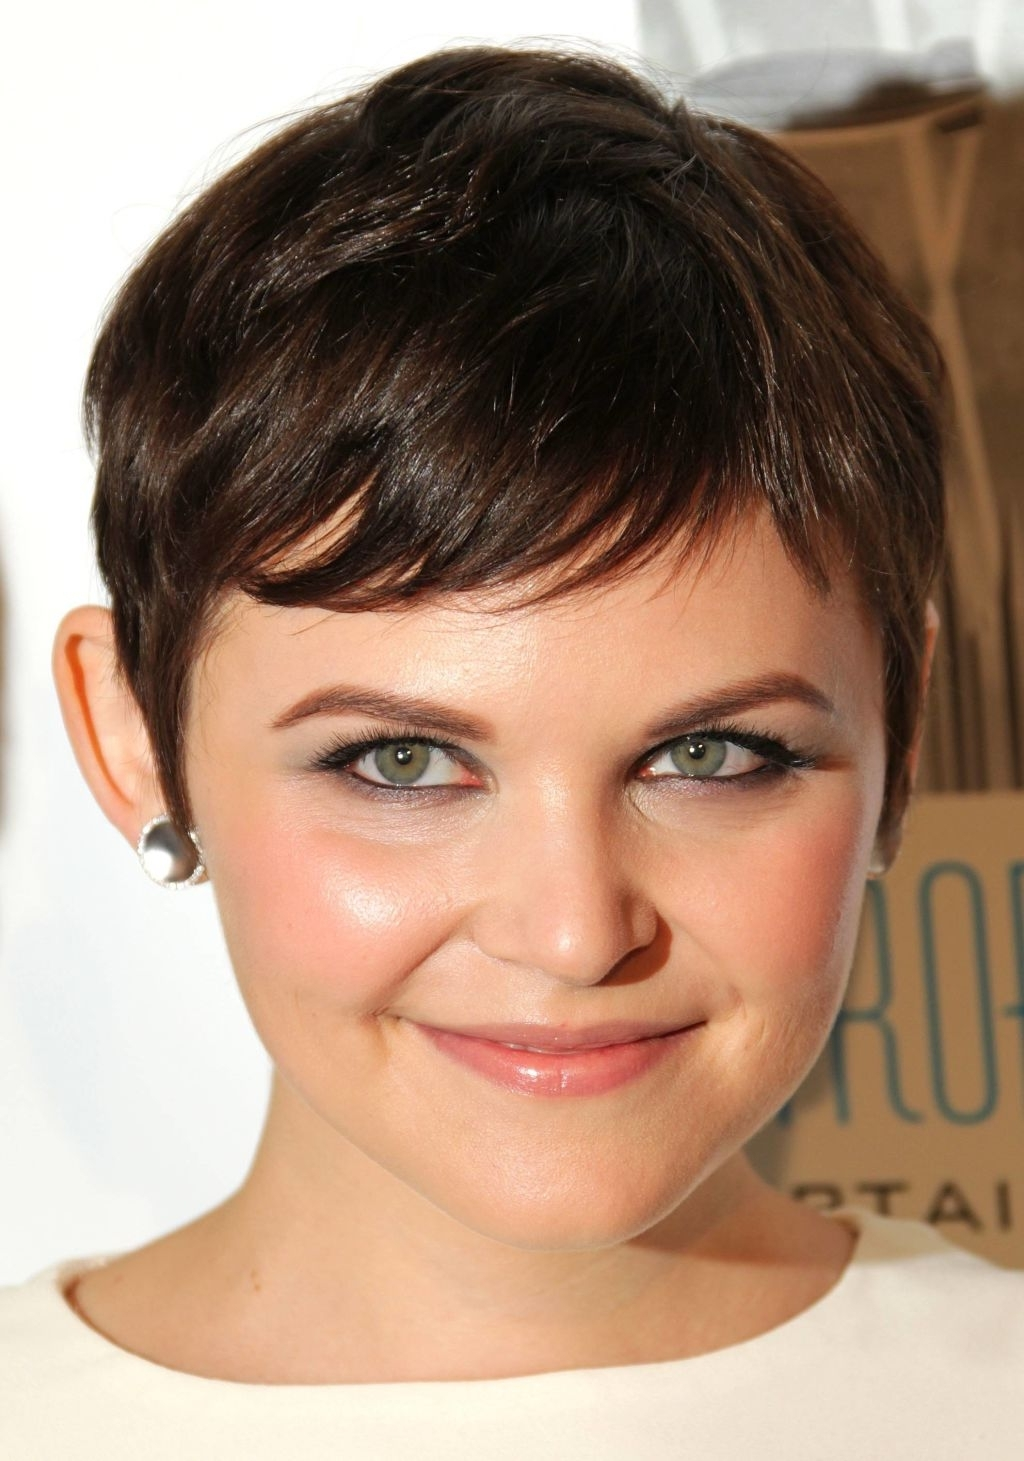 Pictures Of Short Haircuts For Round Faces – Hairstyles Ideas Inside Most Current Pixie Hairstyles For Round Face Shape (View 5 of 15)